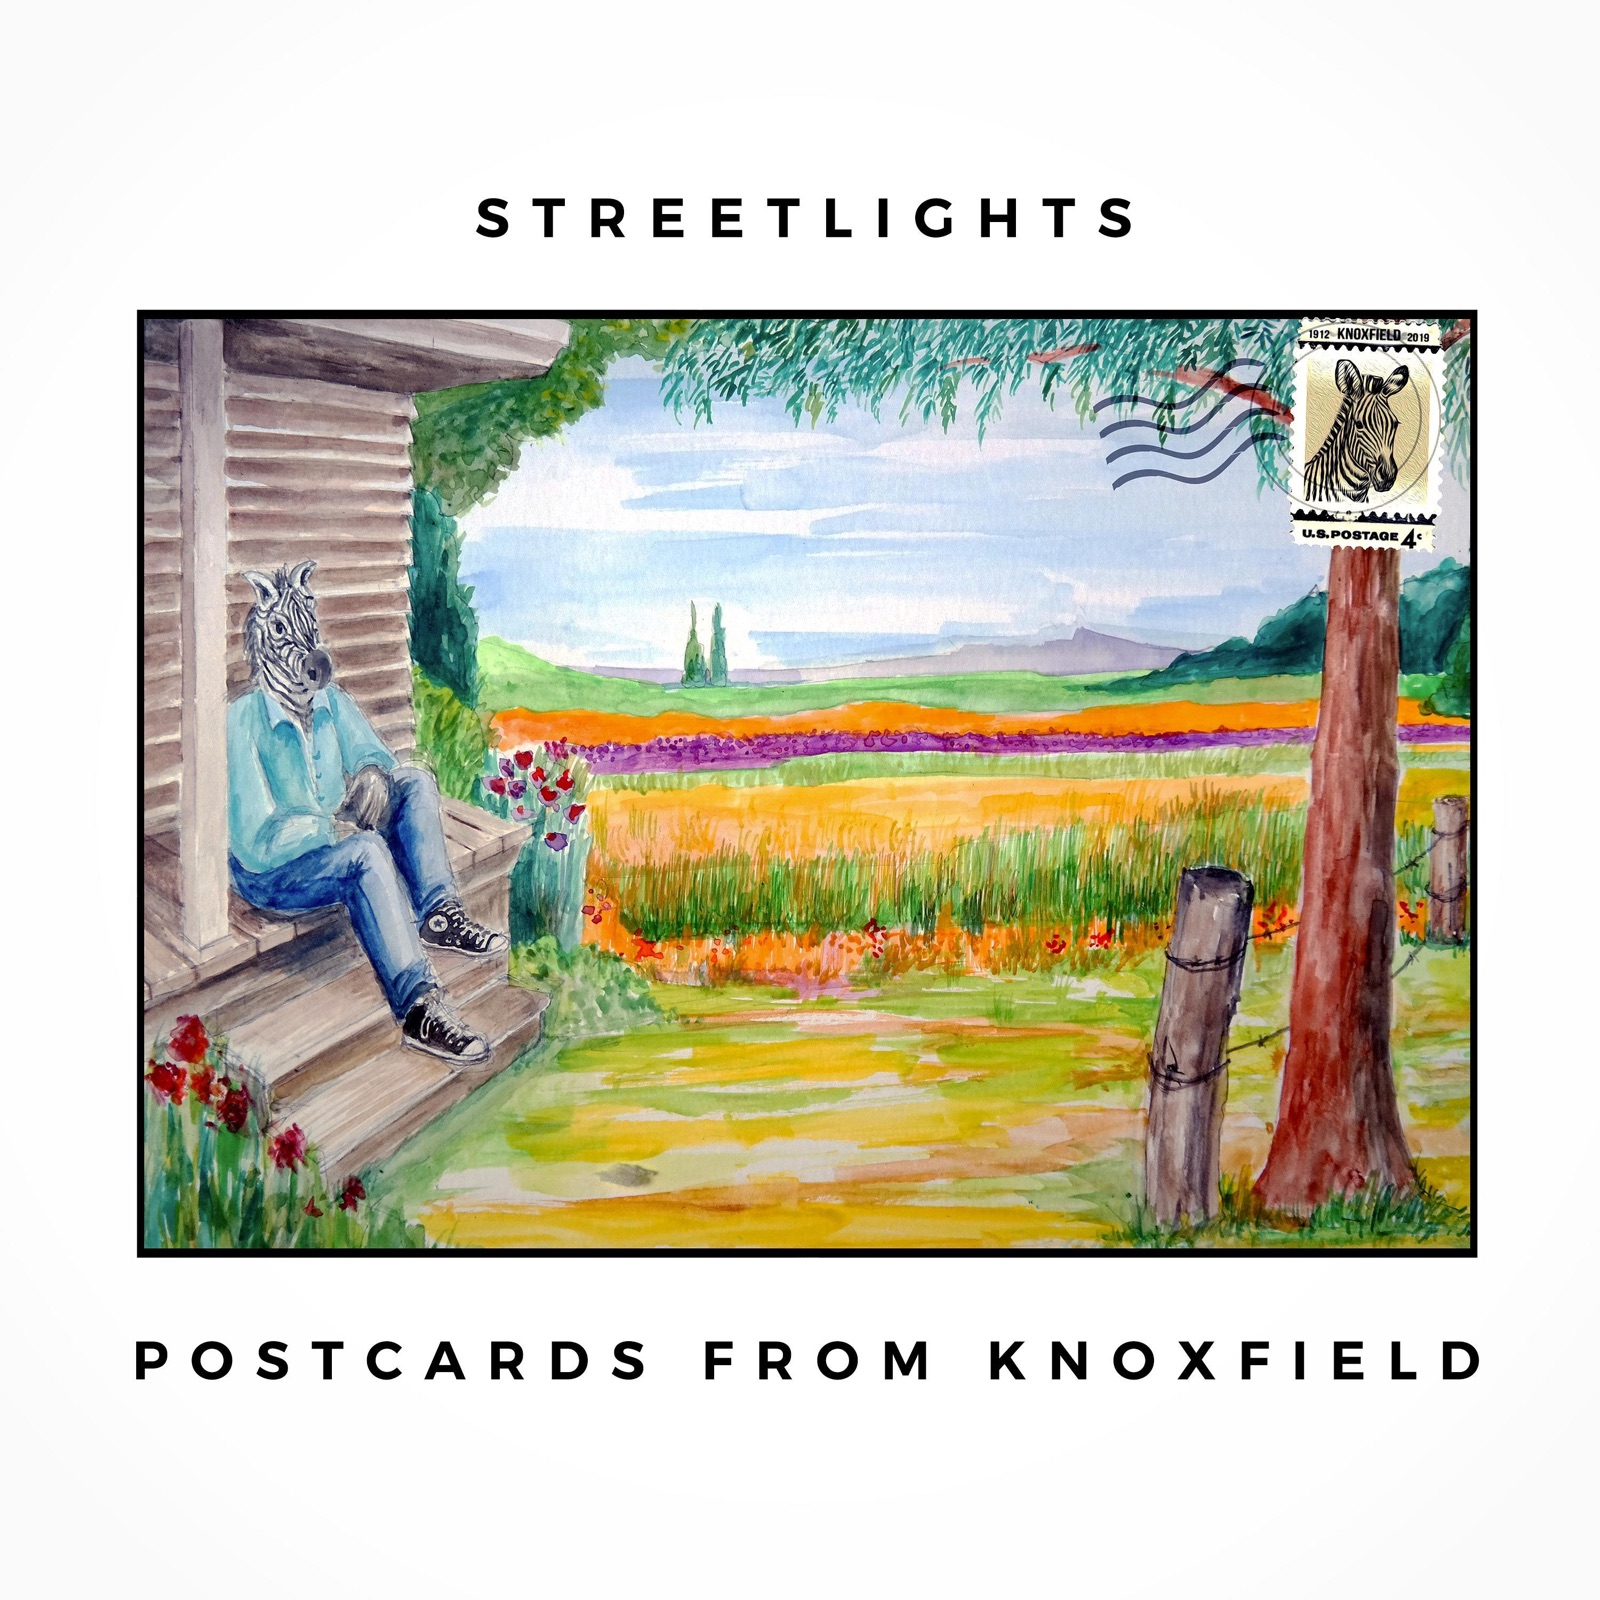 Streetlights (Postcards from Knoxfield)